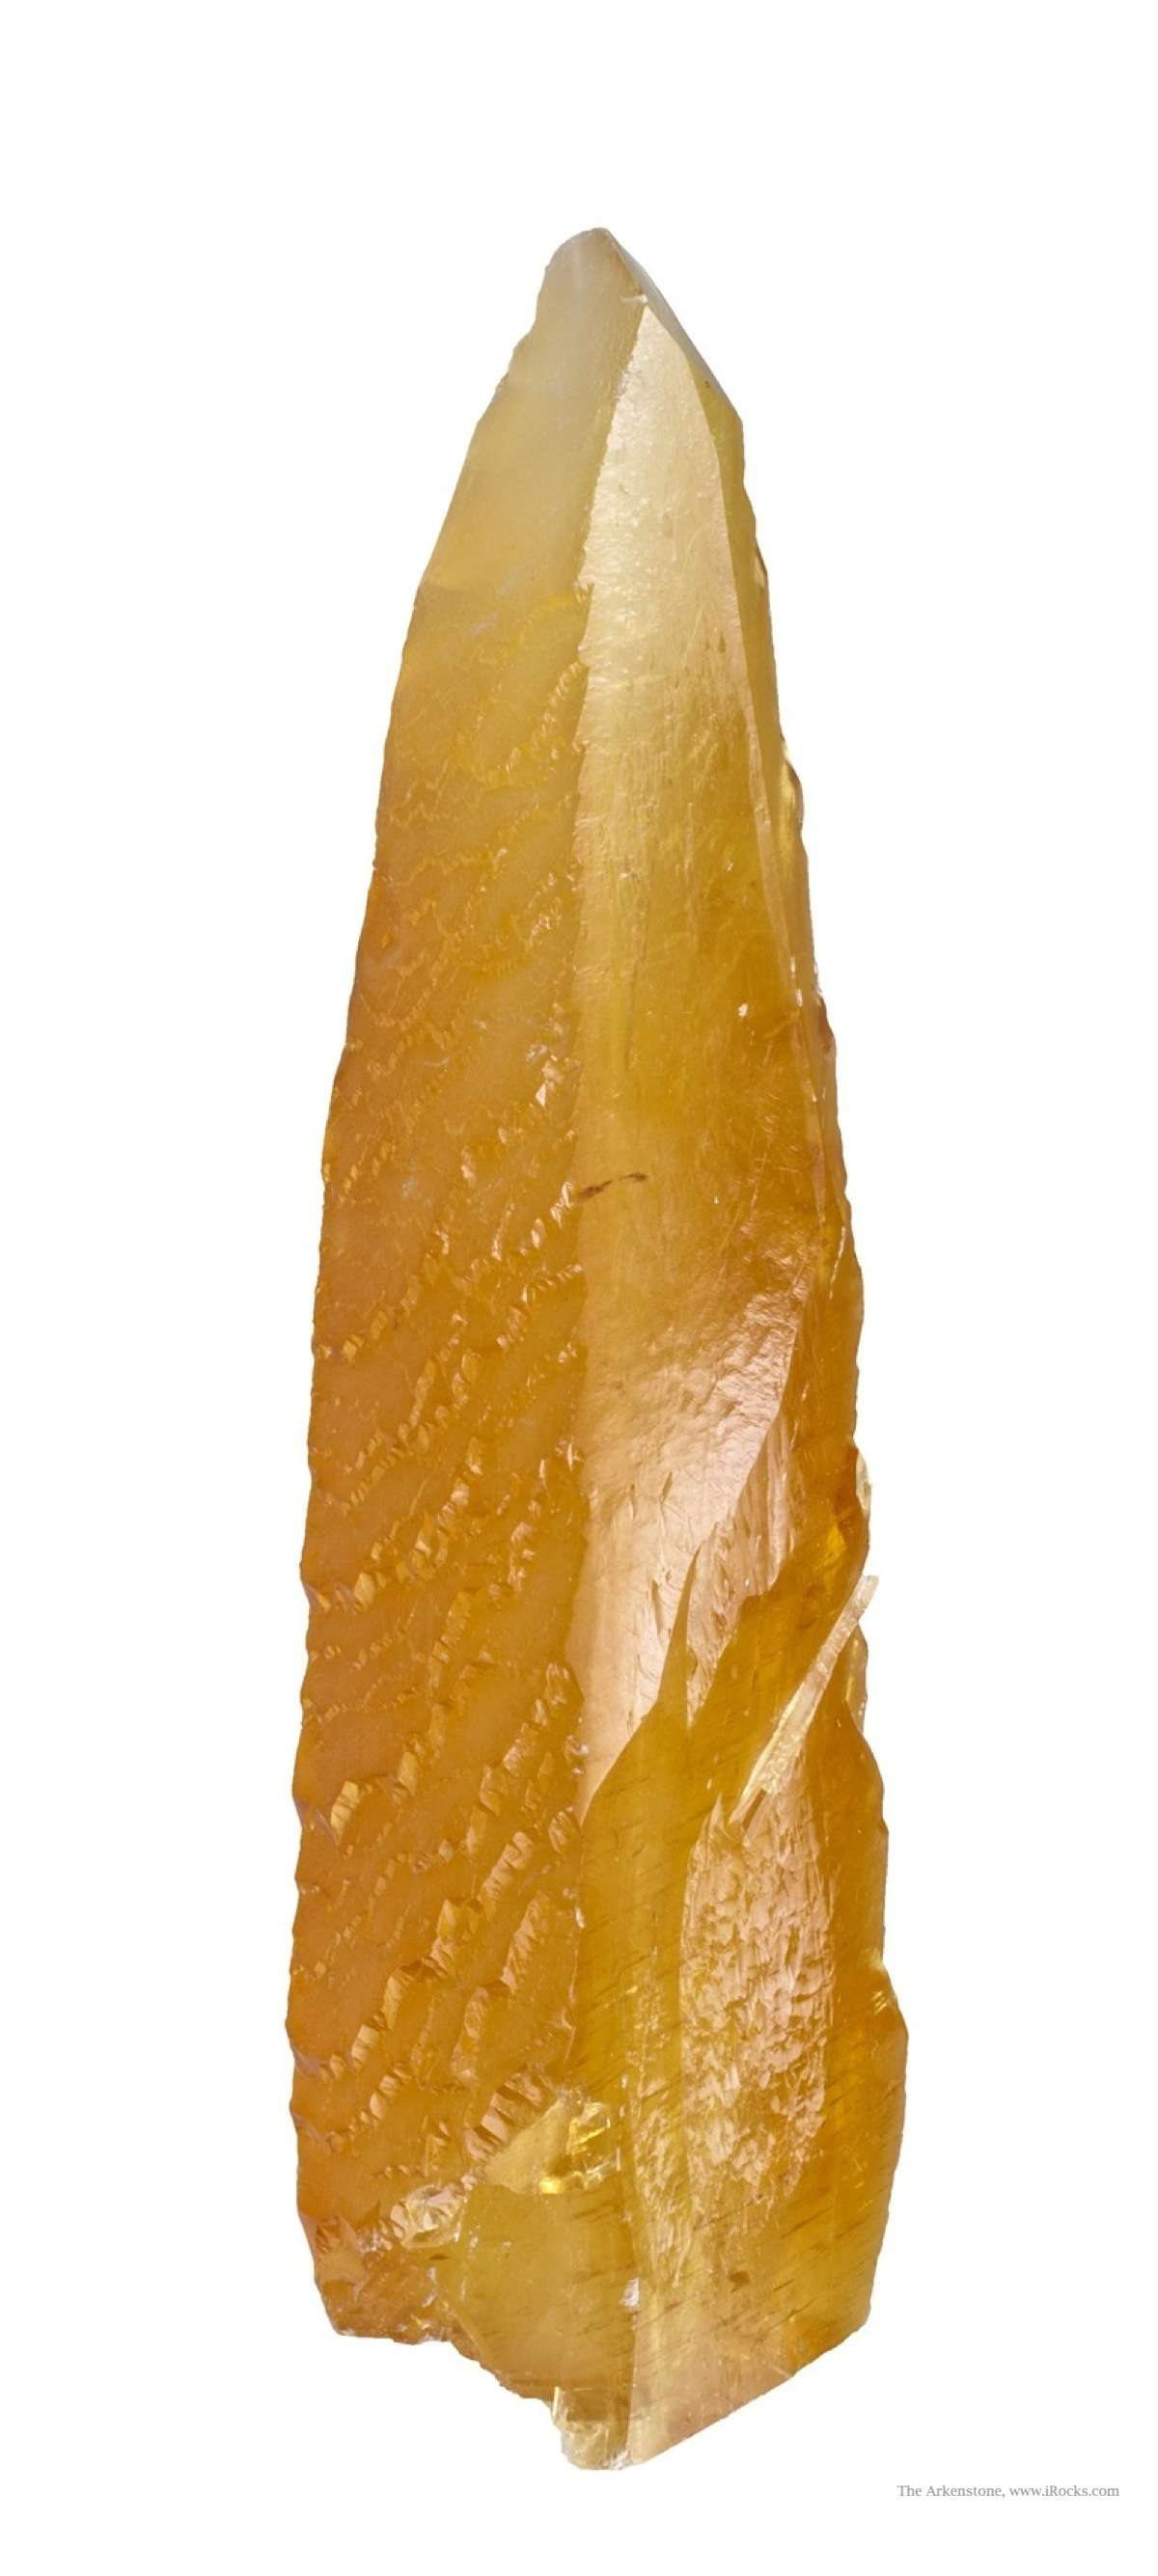 These surreal elongated glowing golden crystals stalactites 2008